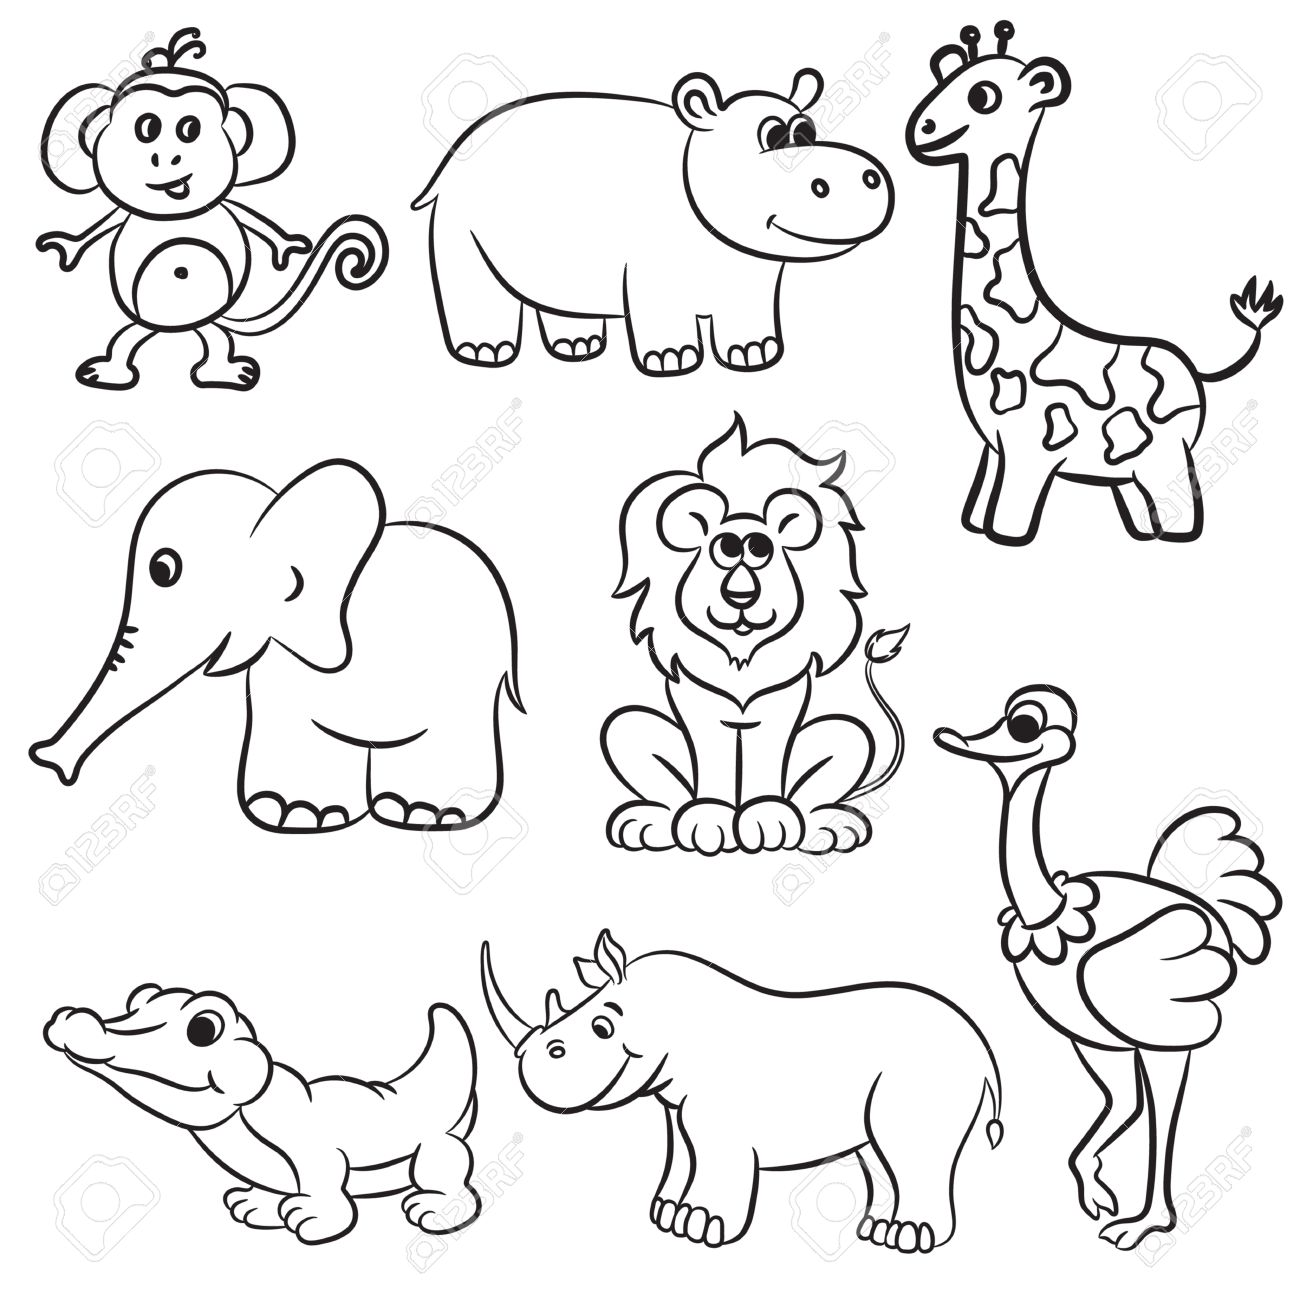 1300x1300 Cute Outlined Zoo Animals Collection. Vector Illustration. Royalty